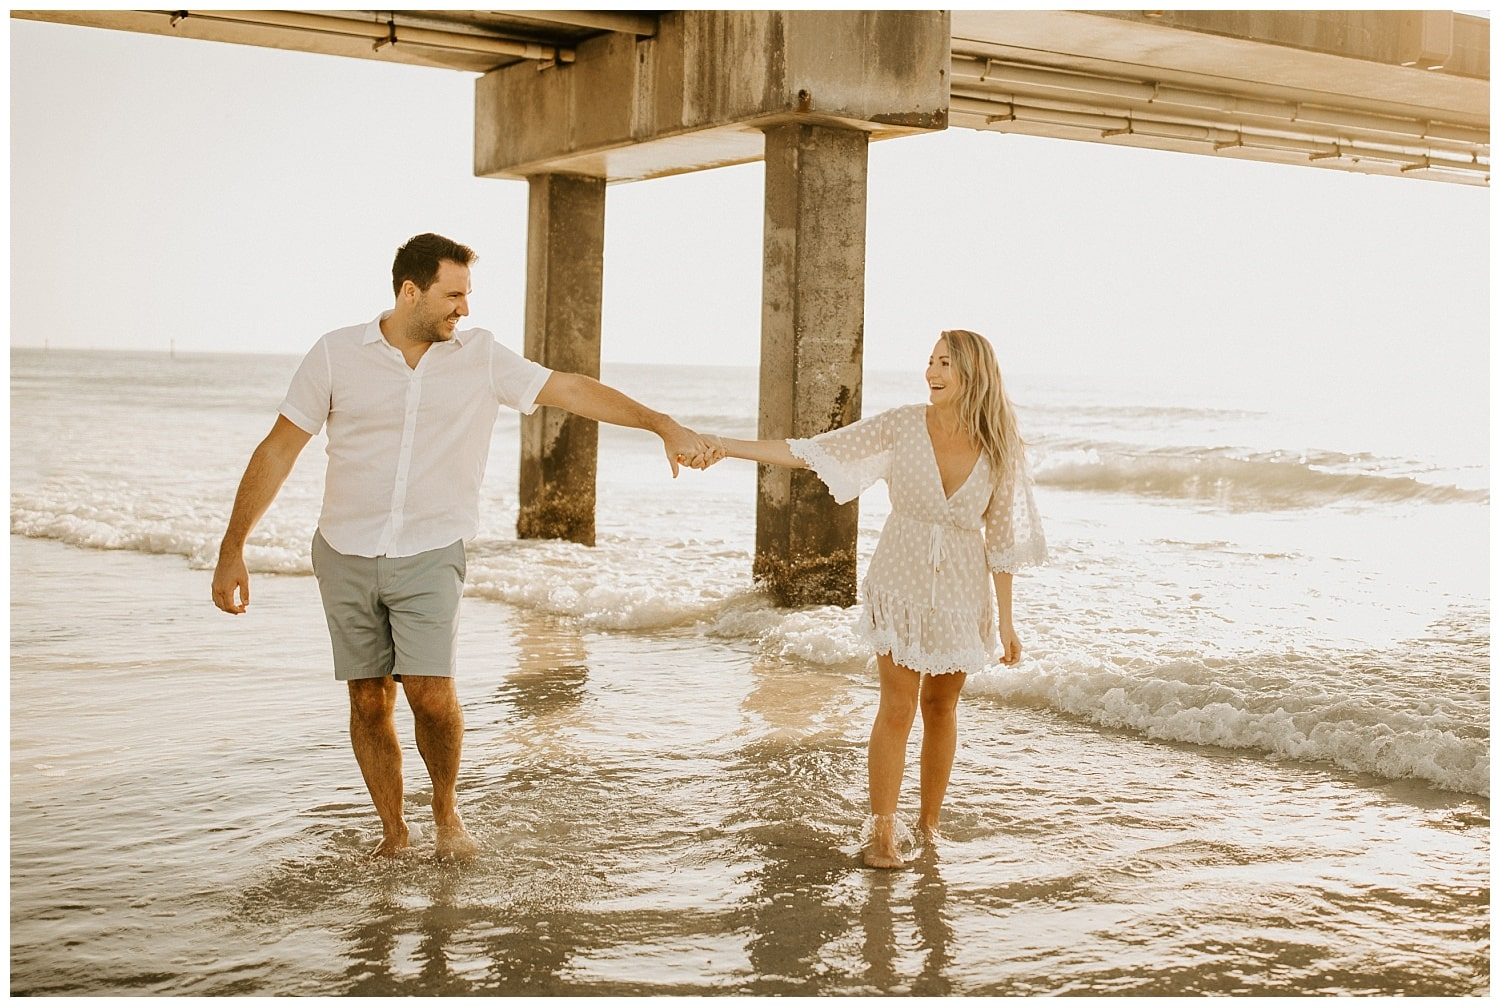 clearwater beach,clearwater beach engagement,clearwater beach photographer,clearwater beach wedding photographer,pier 60,pier 60 engagement,pier 60 engagement photos,siesta key photographer,siesta key wedding photographer,tampa photographer,tampa wedding photographer,